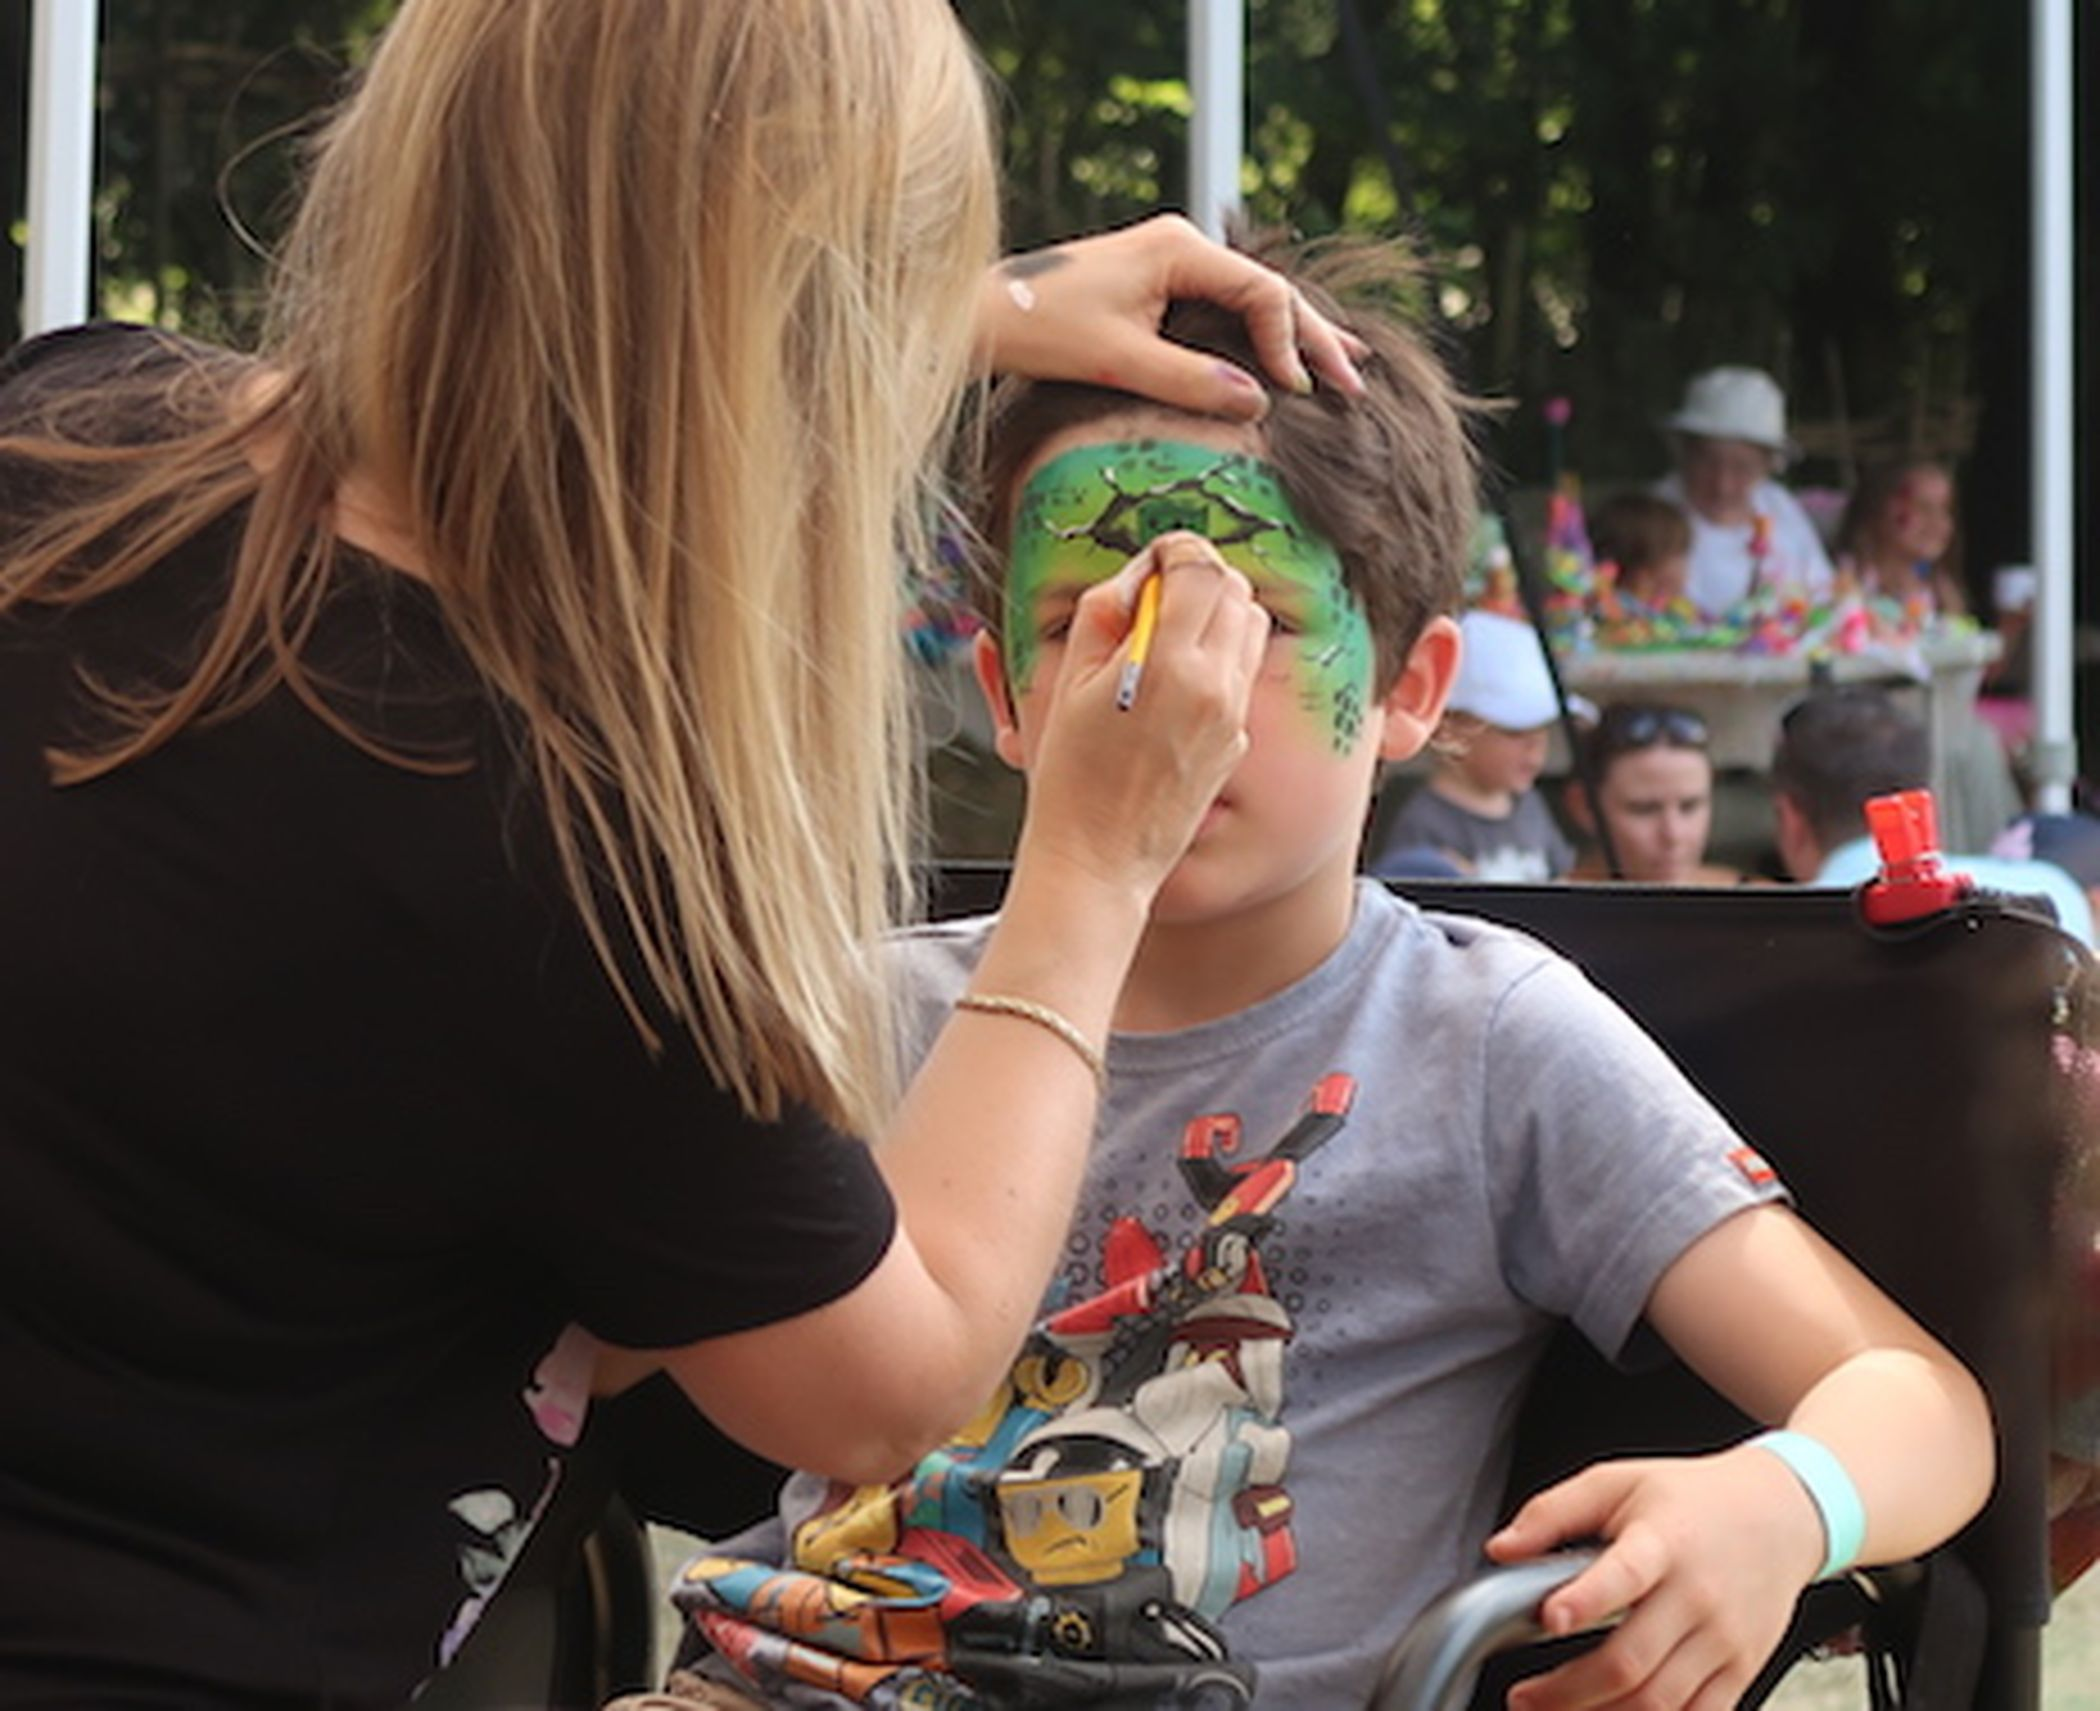 Boy getting his face painted at the Woodland Fairy Fair